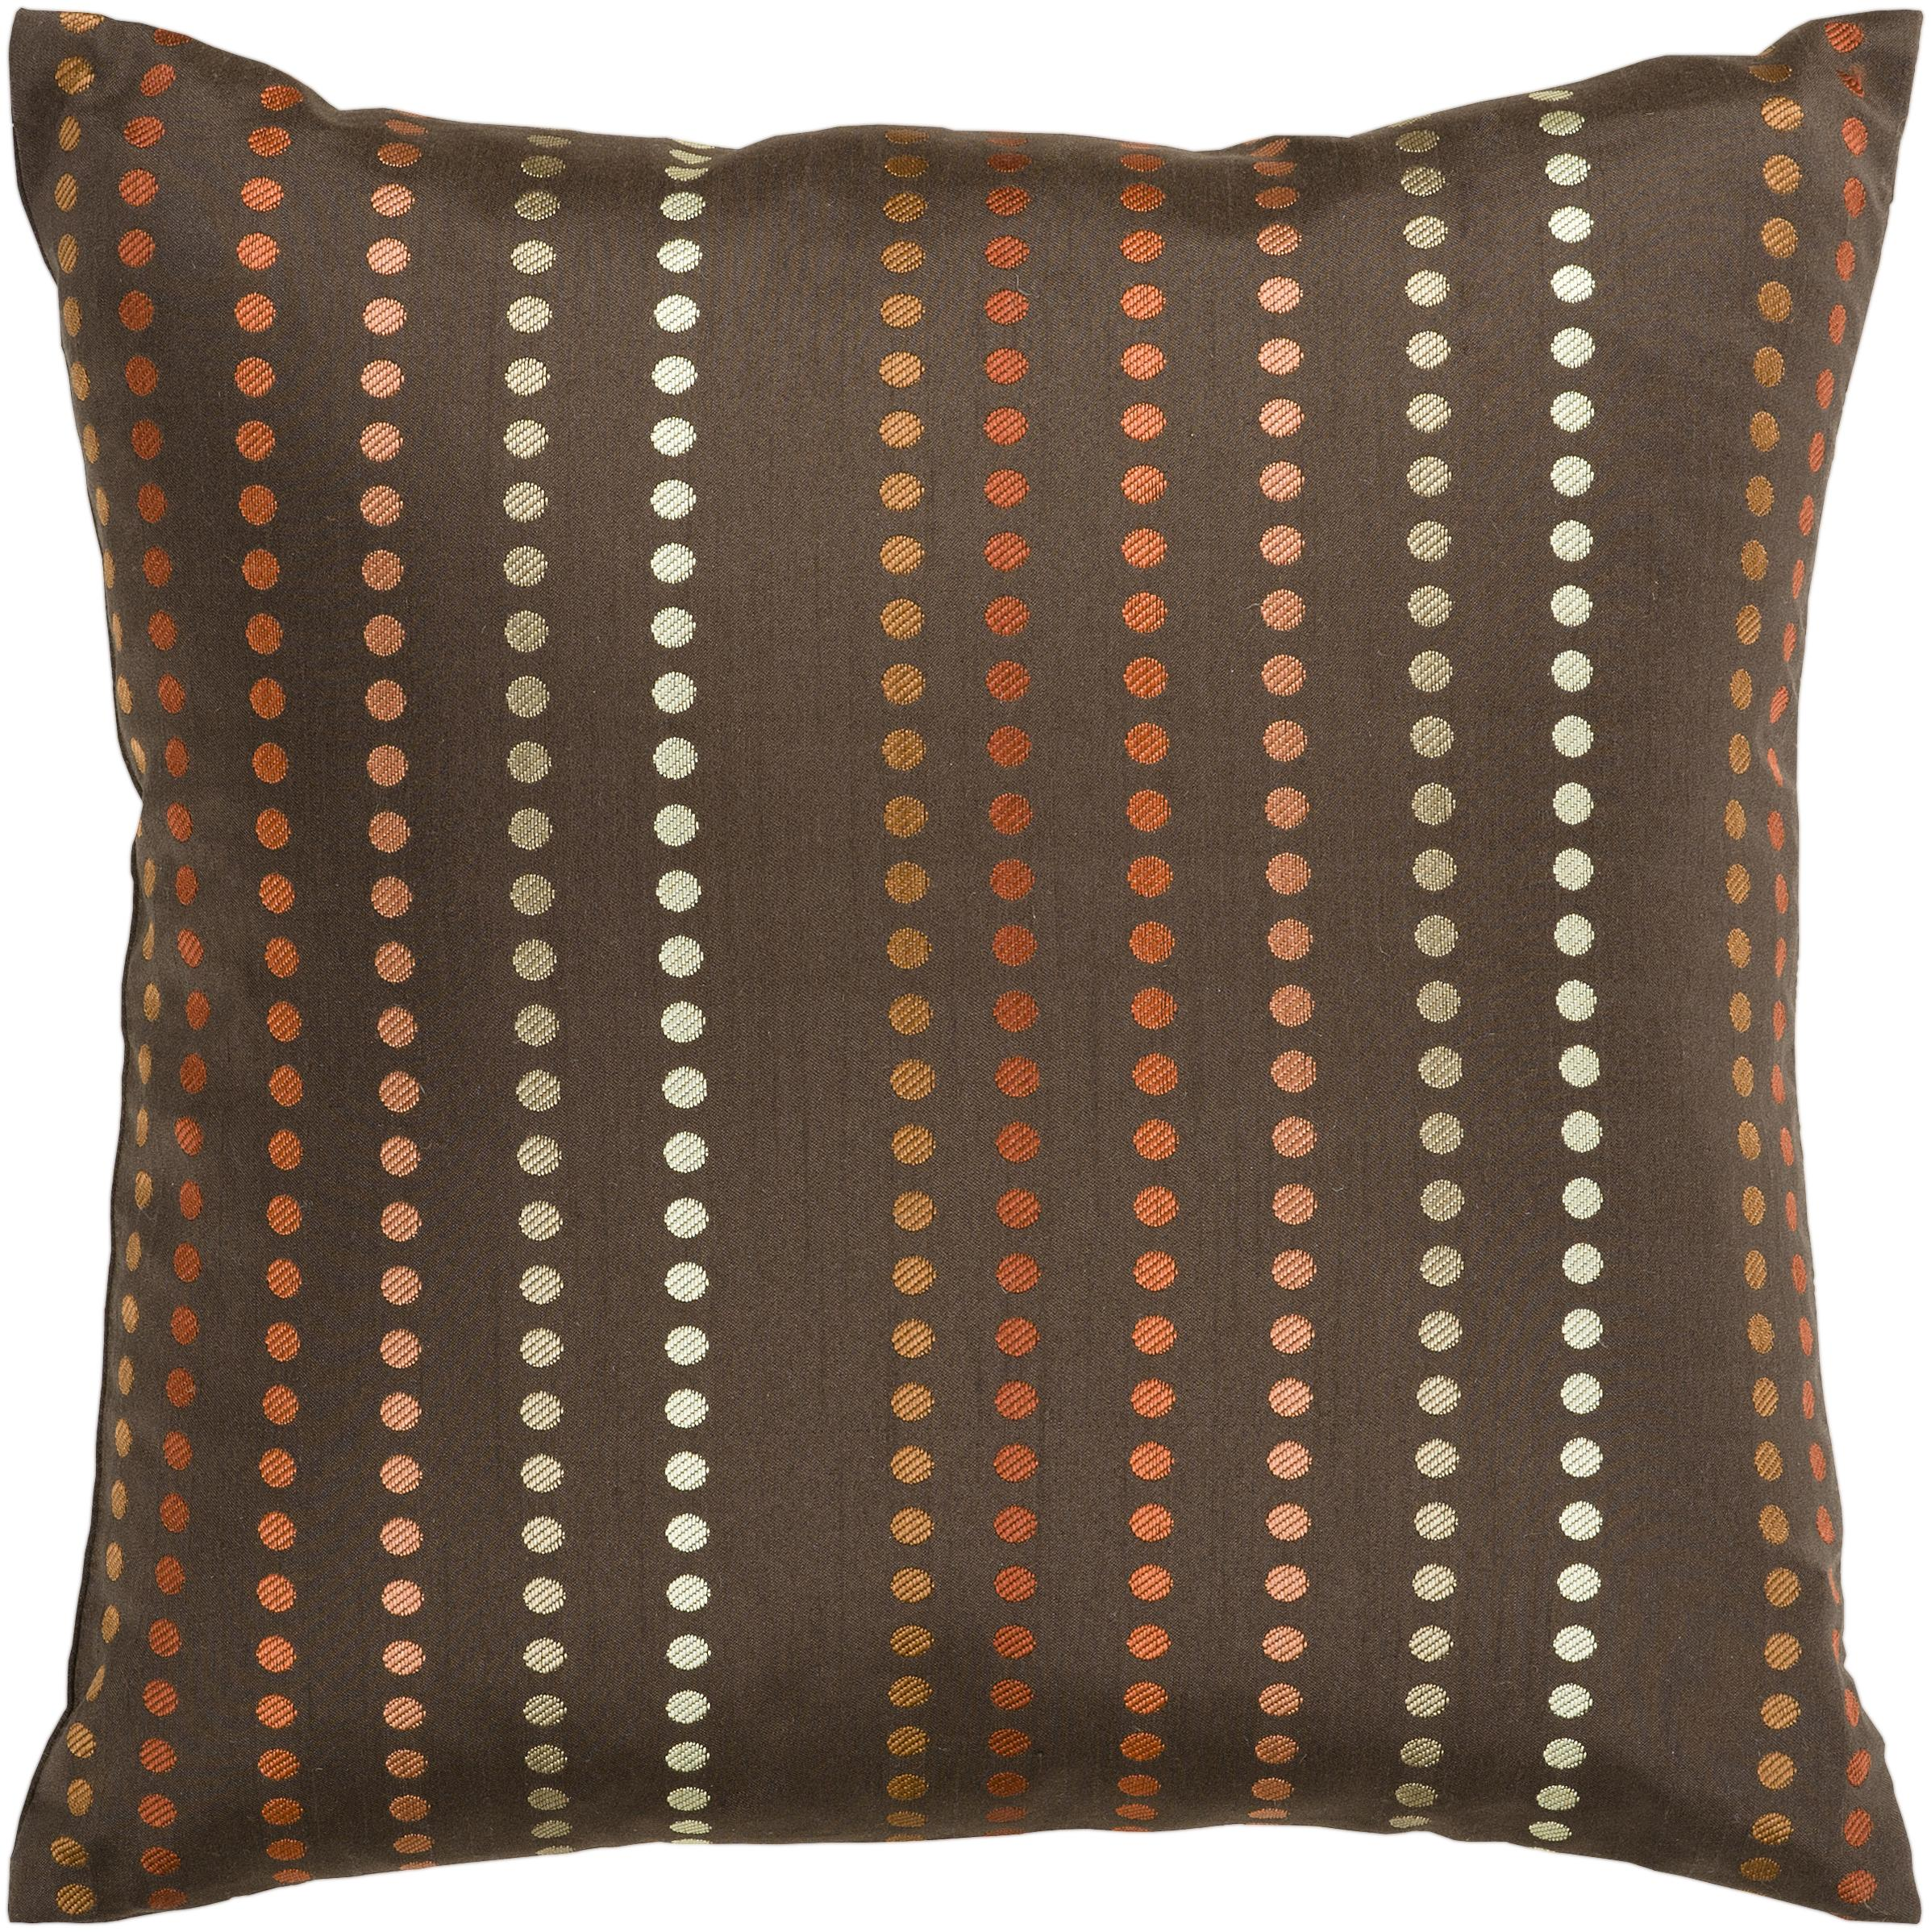 "Surya Pillows 18"" x 18"" Pillow - Item Number: HH081-1818P"